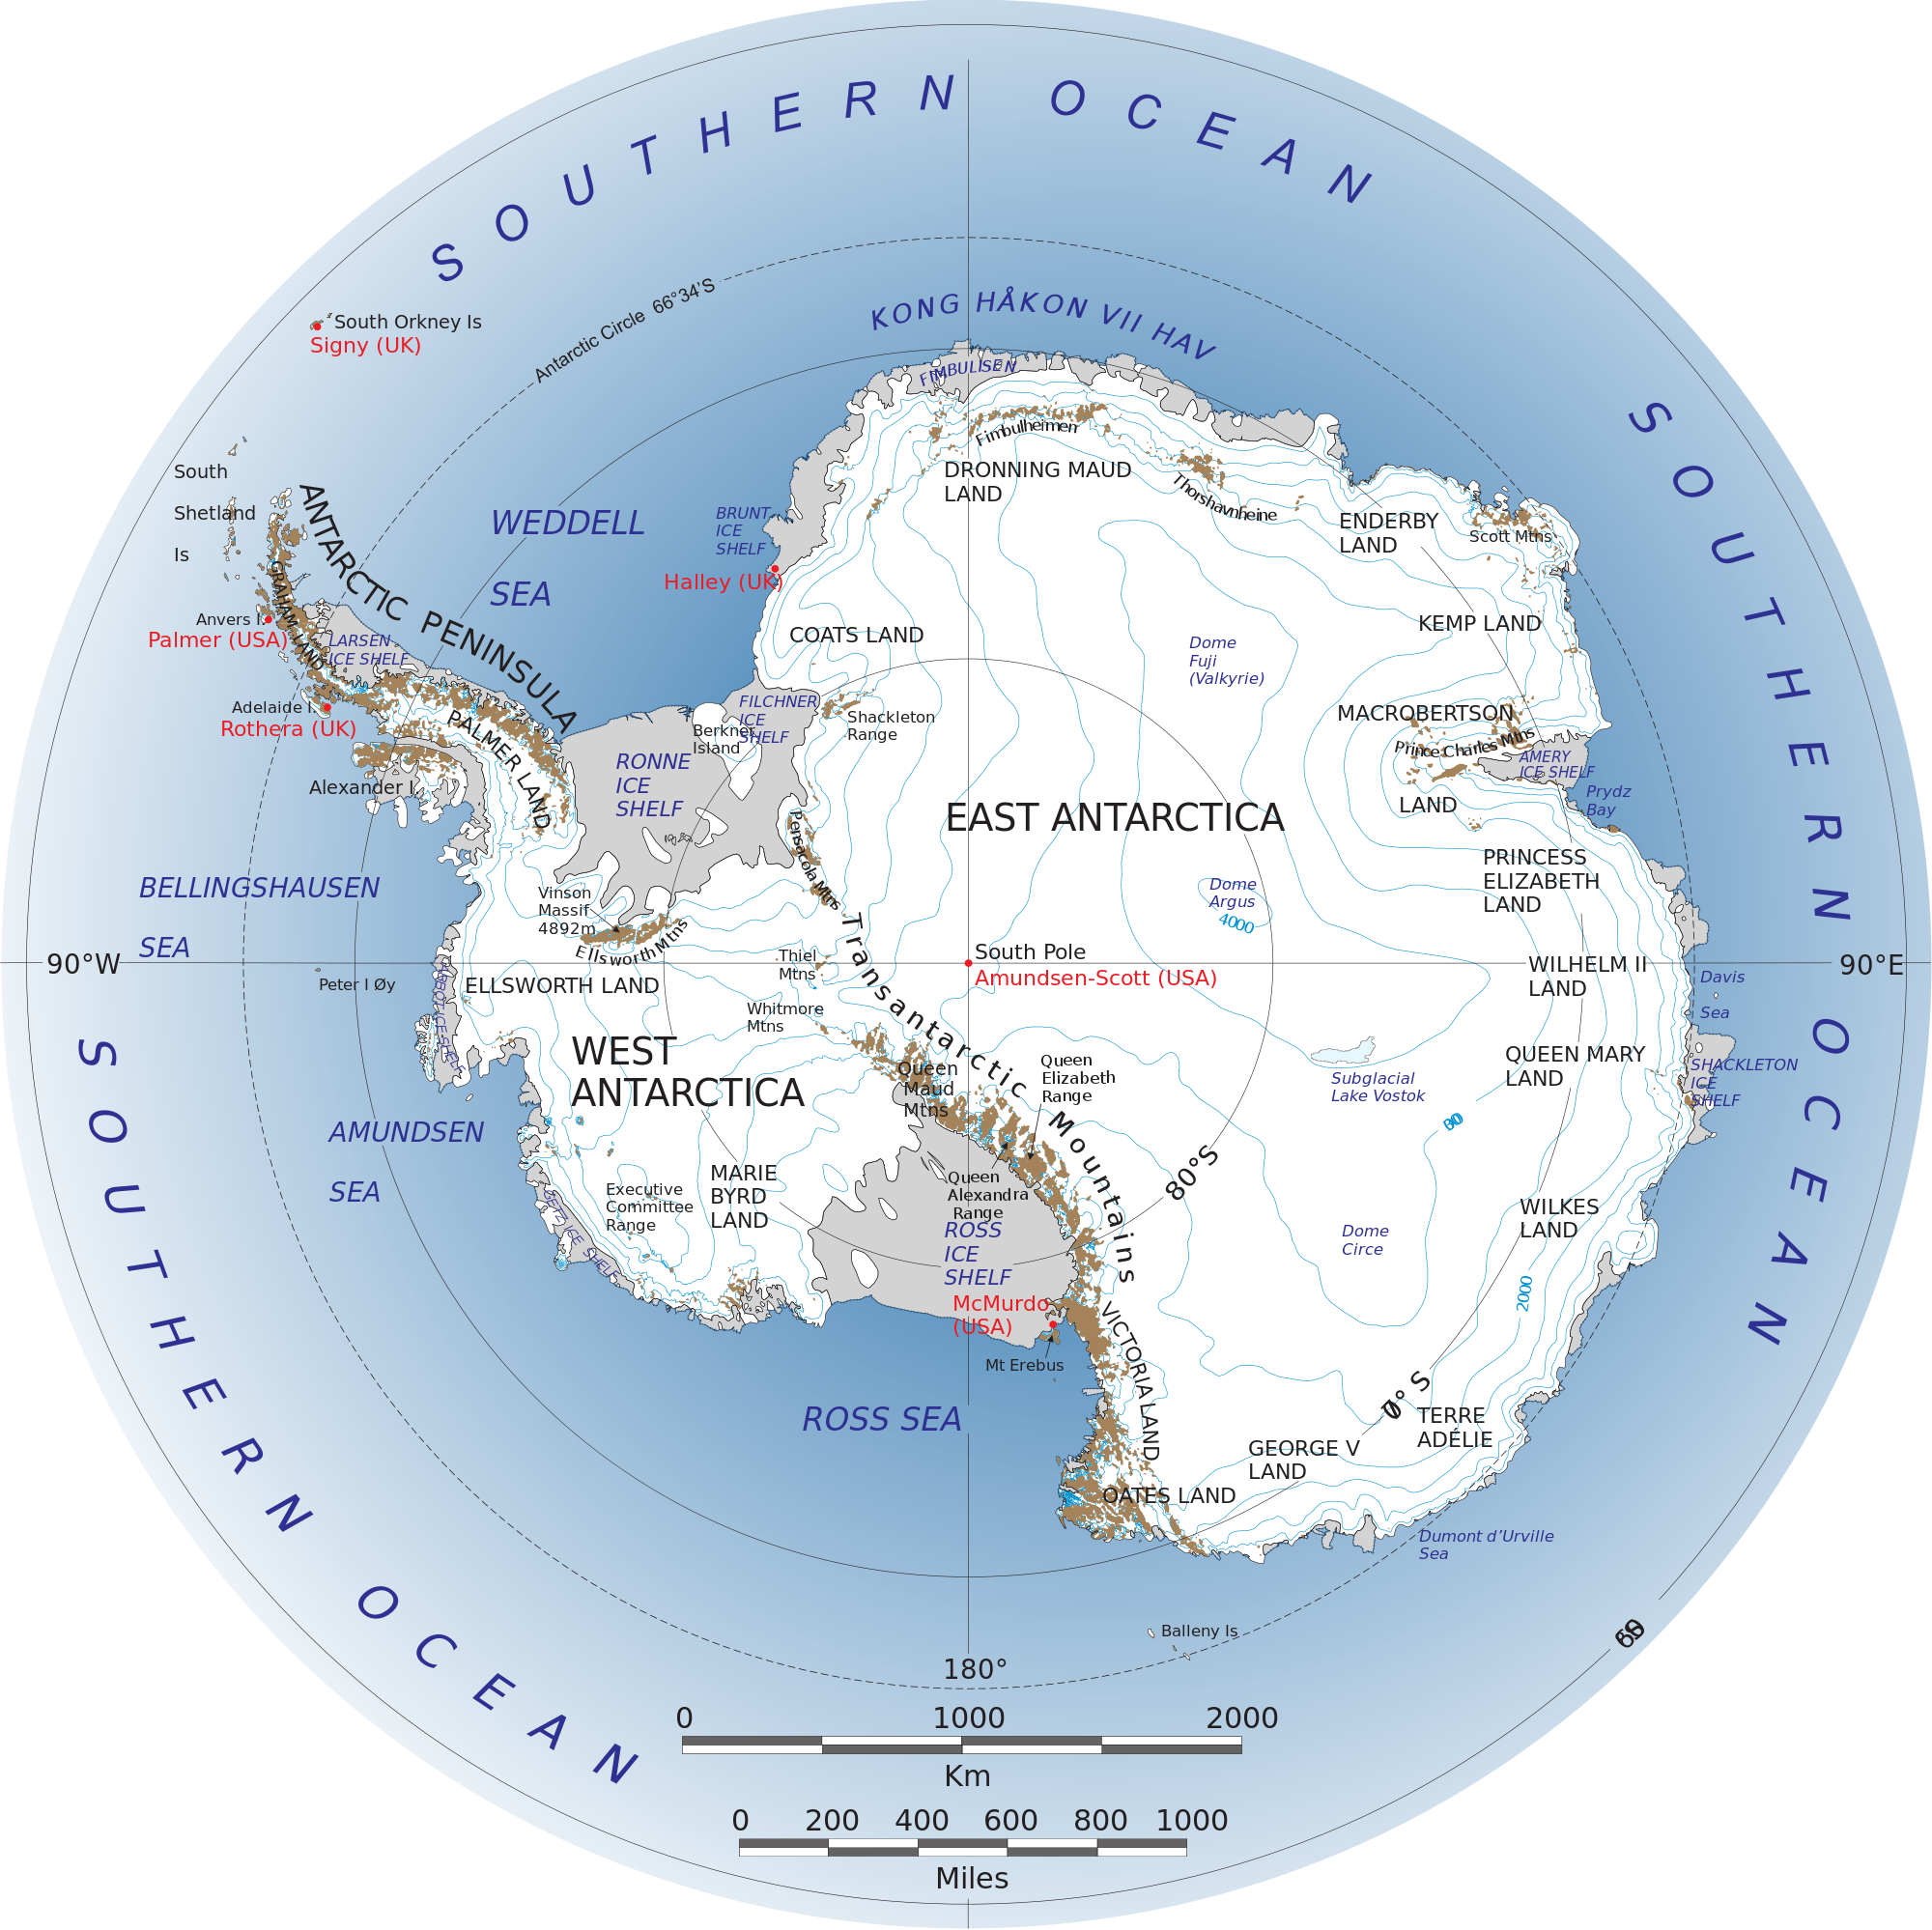 Antarctica drawing underwater. About antarctic and southern